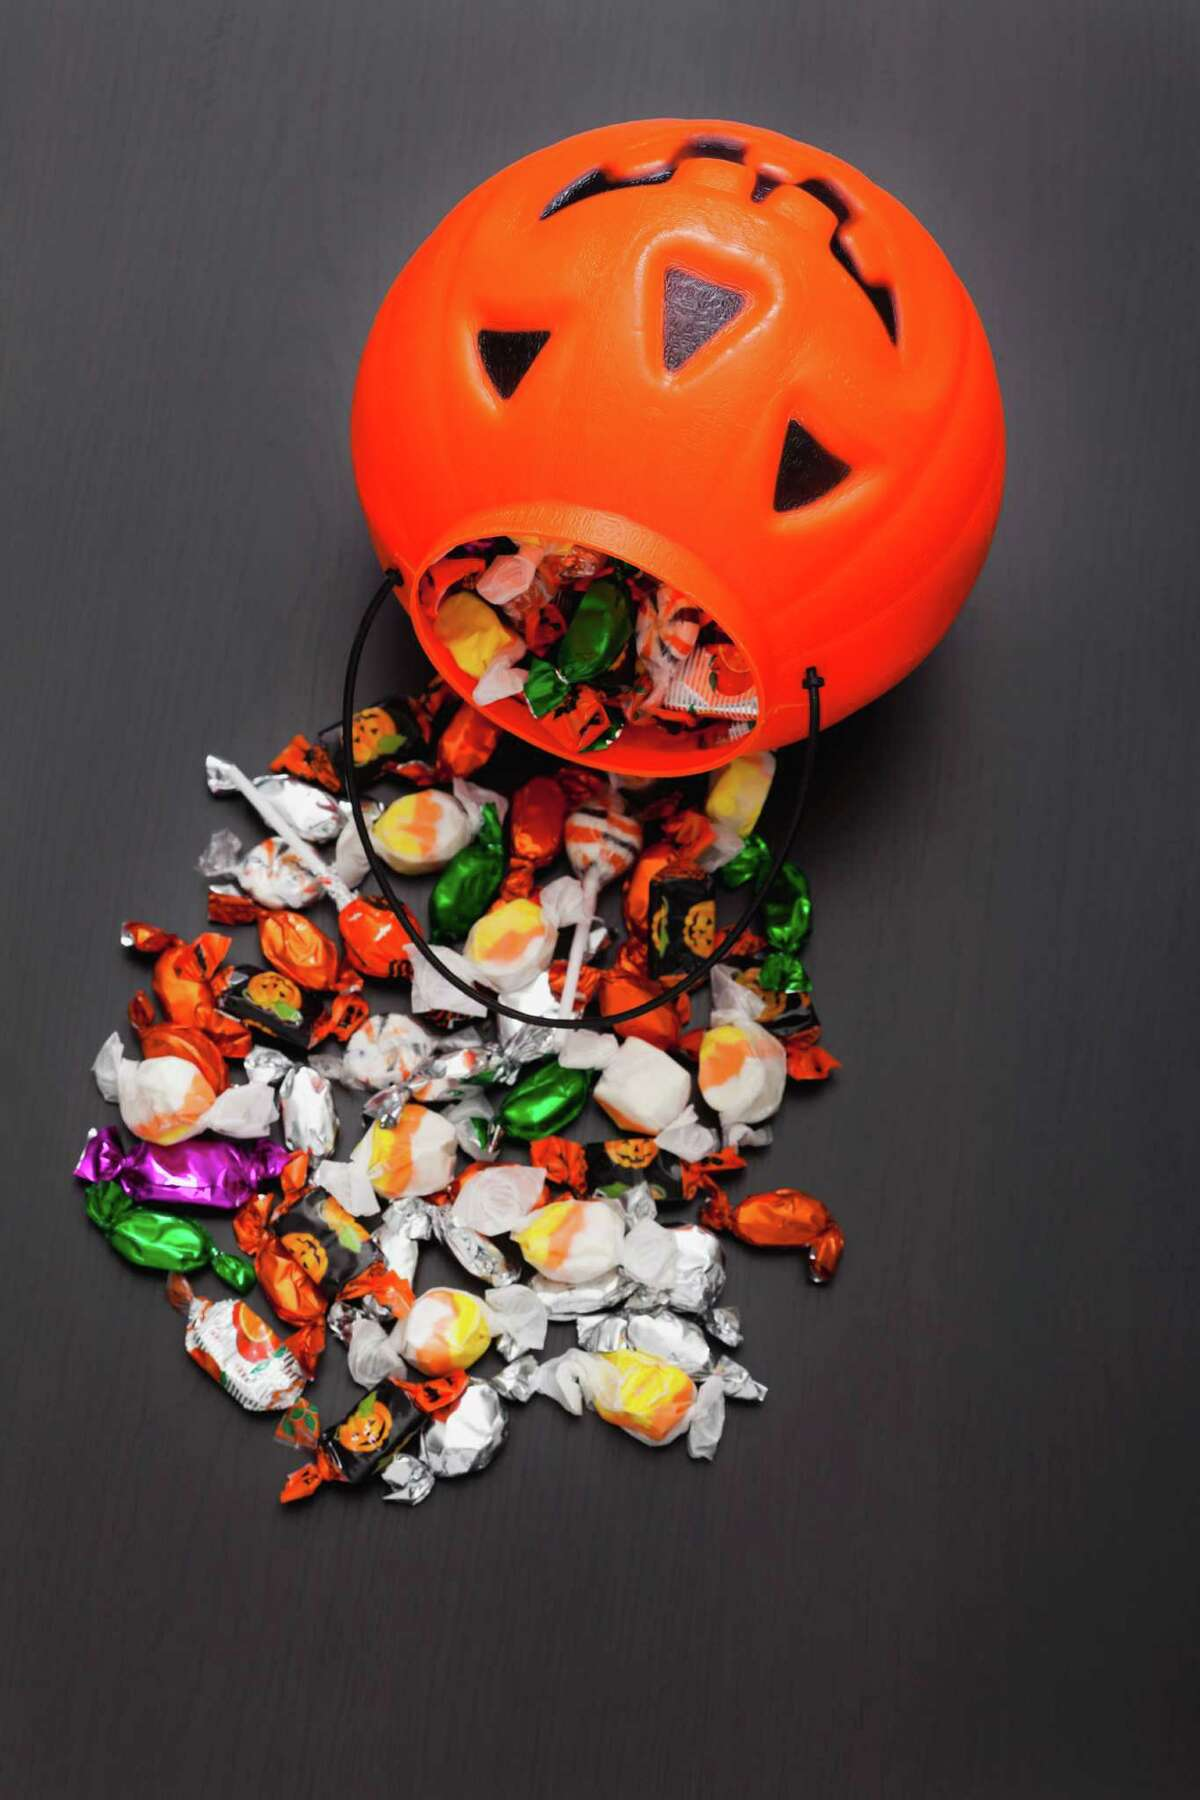 One quarter of all candy sold annually in the U.S. is purchased for Halloween. Source: History.com